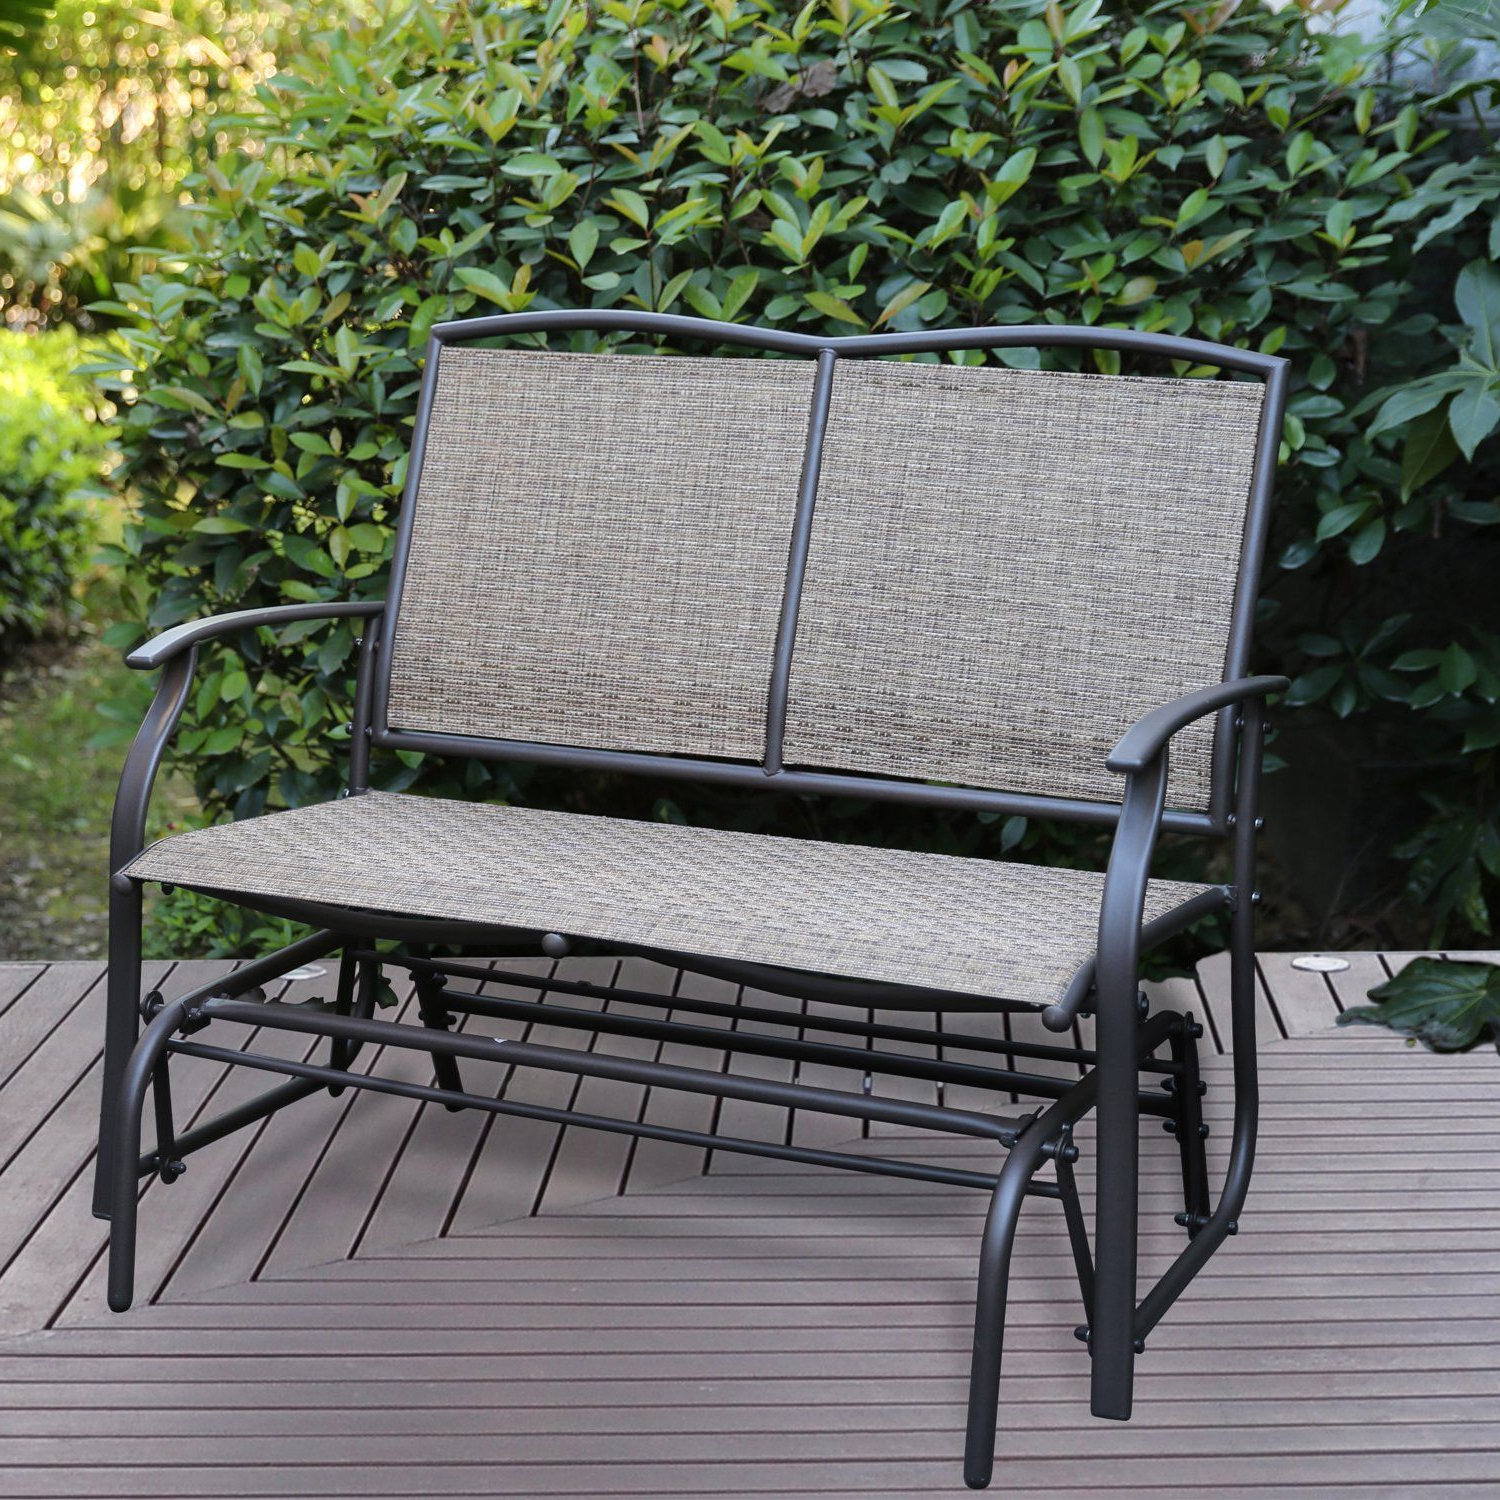 Outdoor Patio Swing Glider Bench Chair S With 2020 Patio Tree Patio Swing Glider Bench For 2 Person All (View 3 of 25)